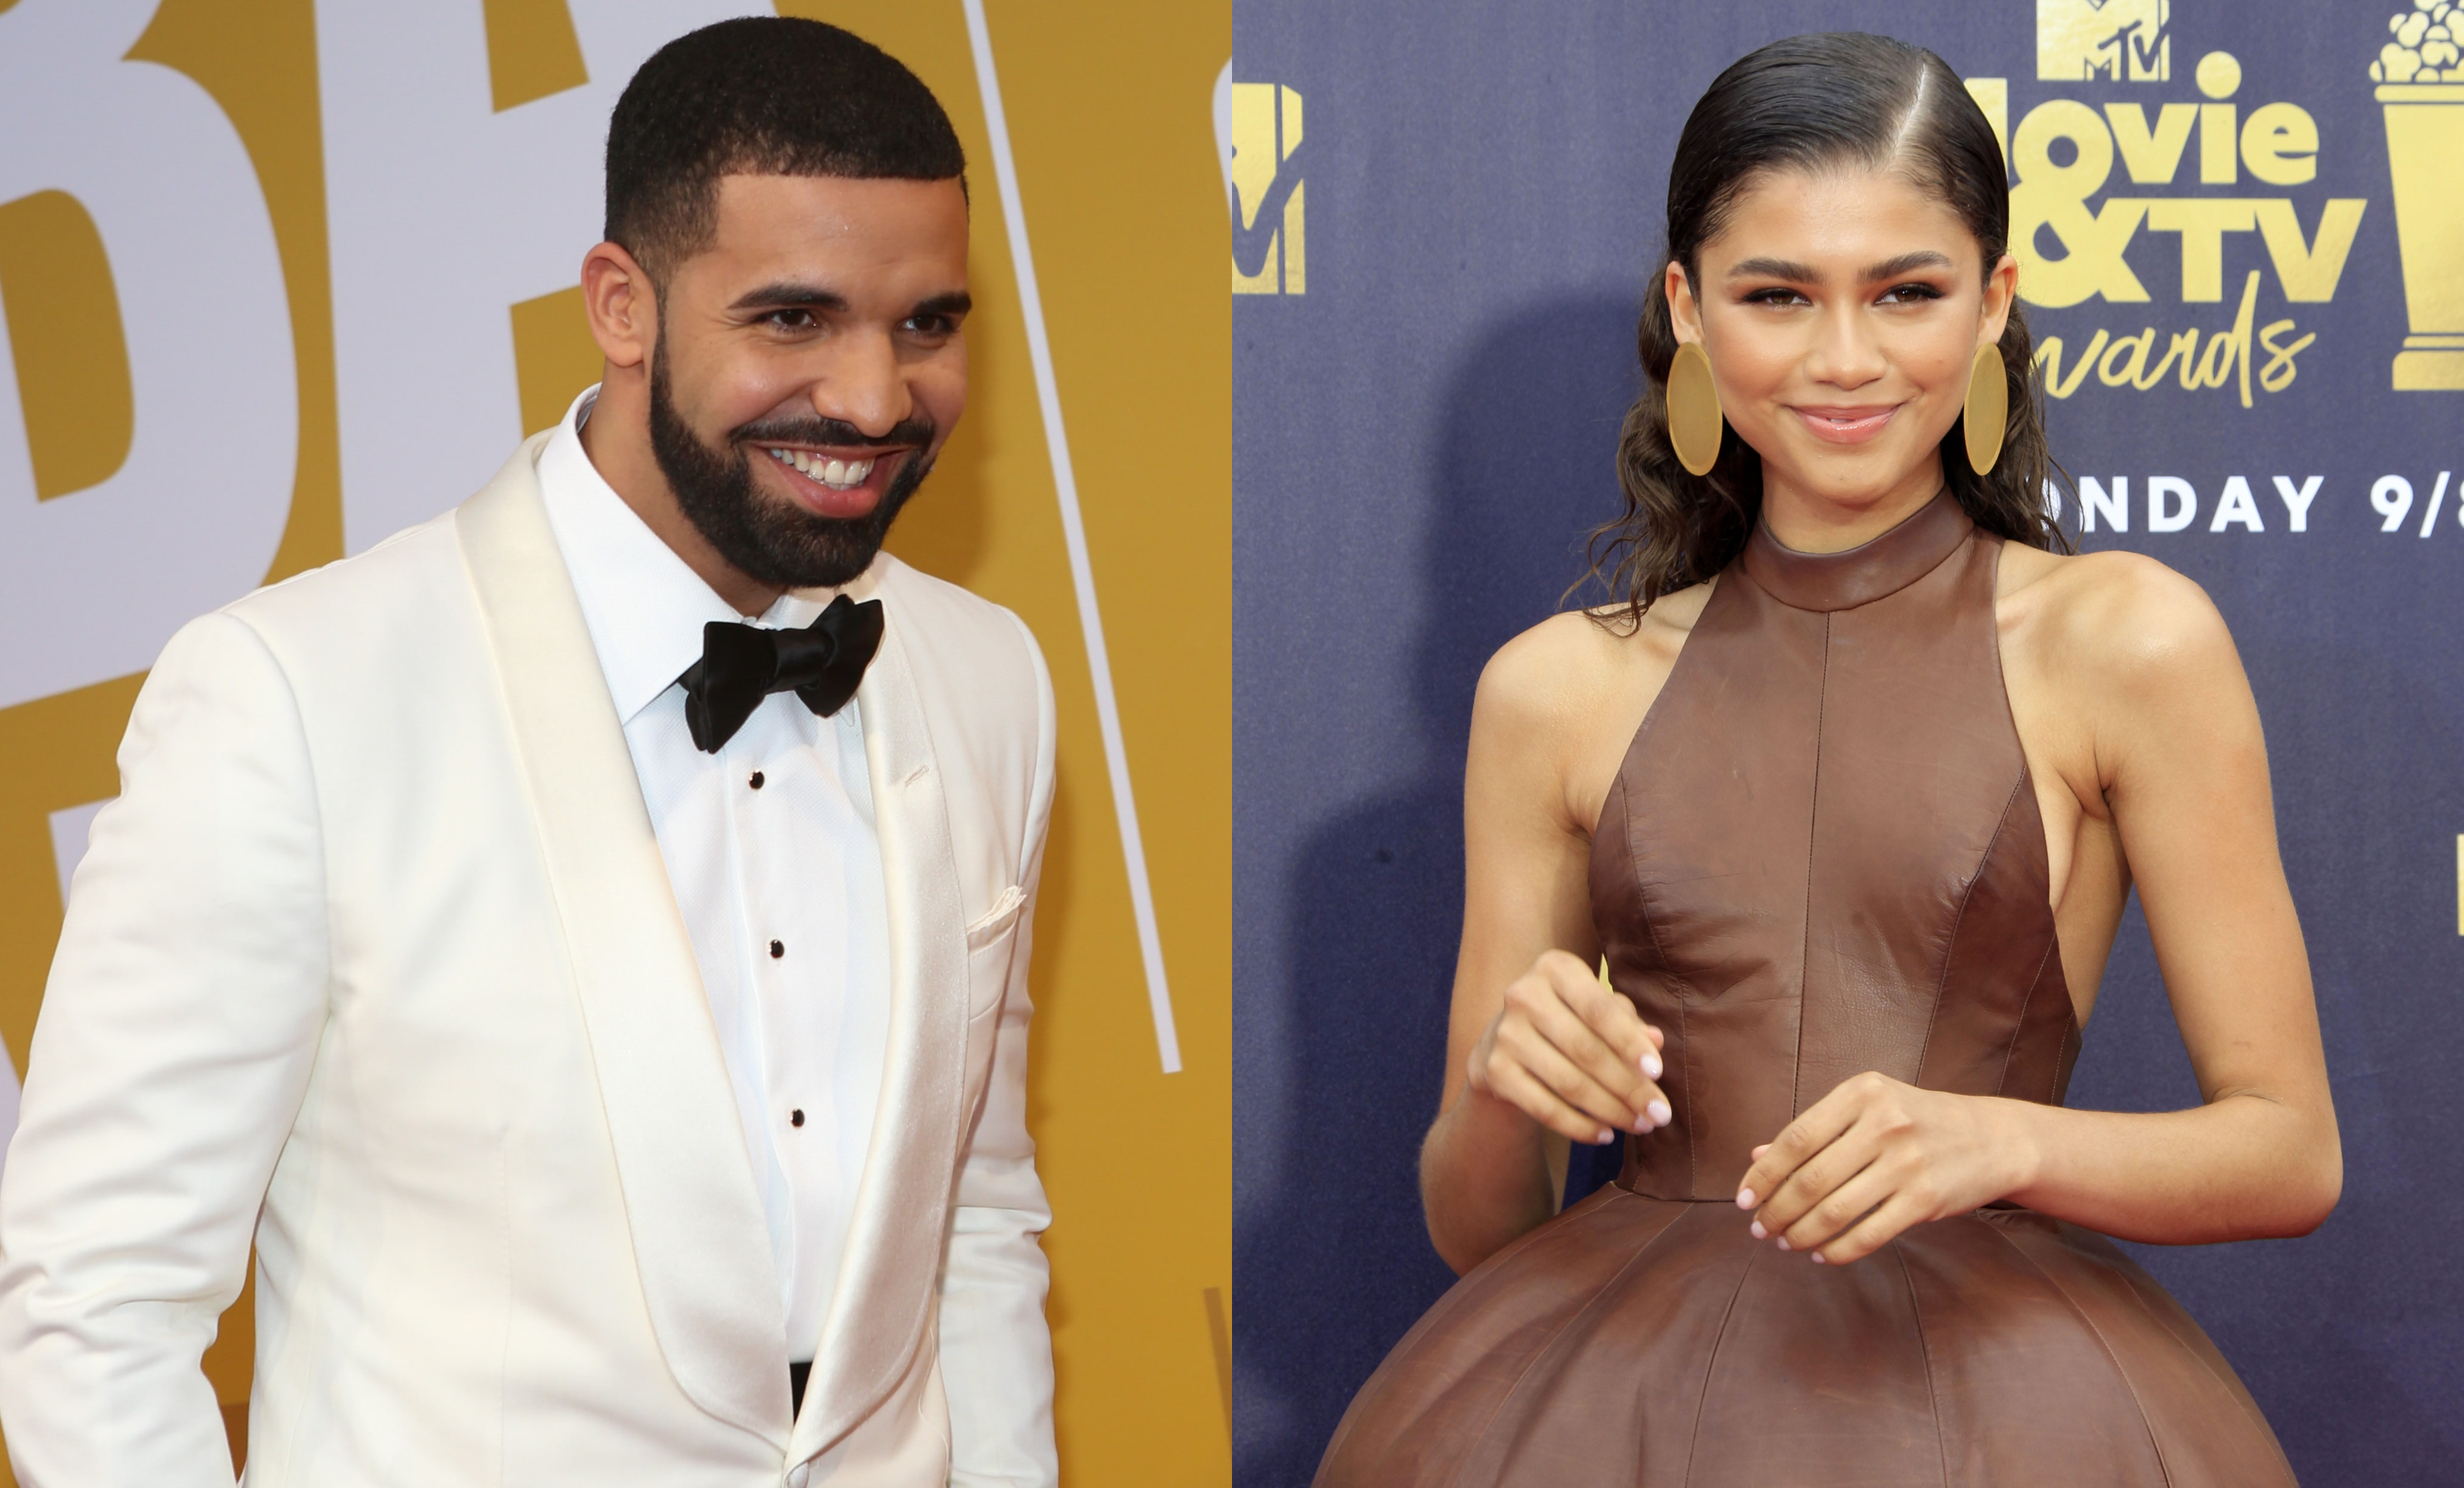 Drake and zendaya are teaming up for new hbo series euphoria jetss drake and zendaya are teaming up for a new hbo series photo wenn m4hsunfo